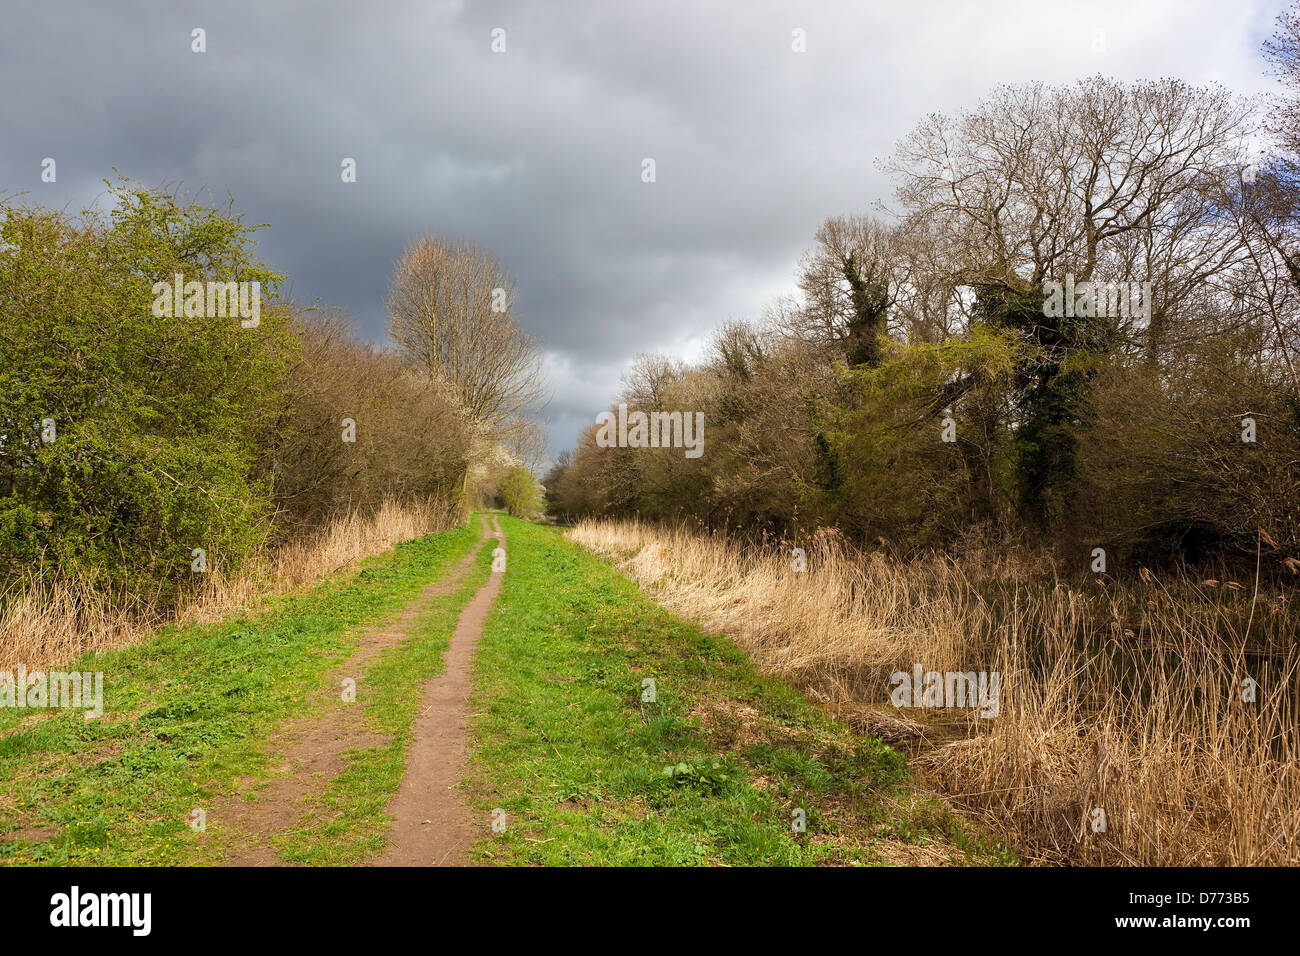 A picturesque towpath in springtime with hedgerows, trees and canal under a dramatic cloudy sky - Stock Image